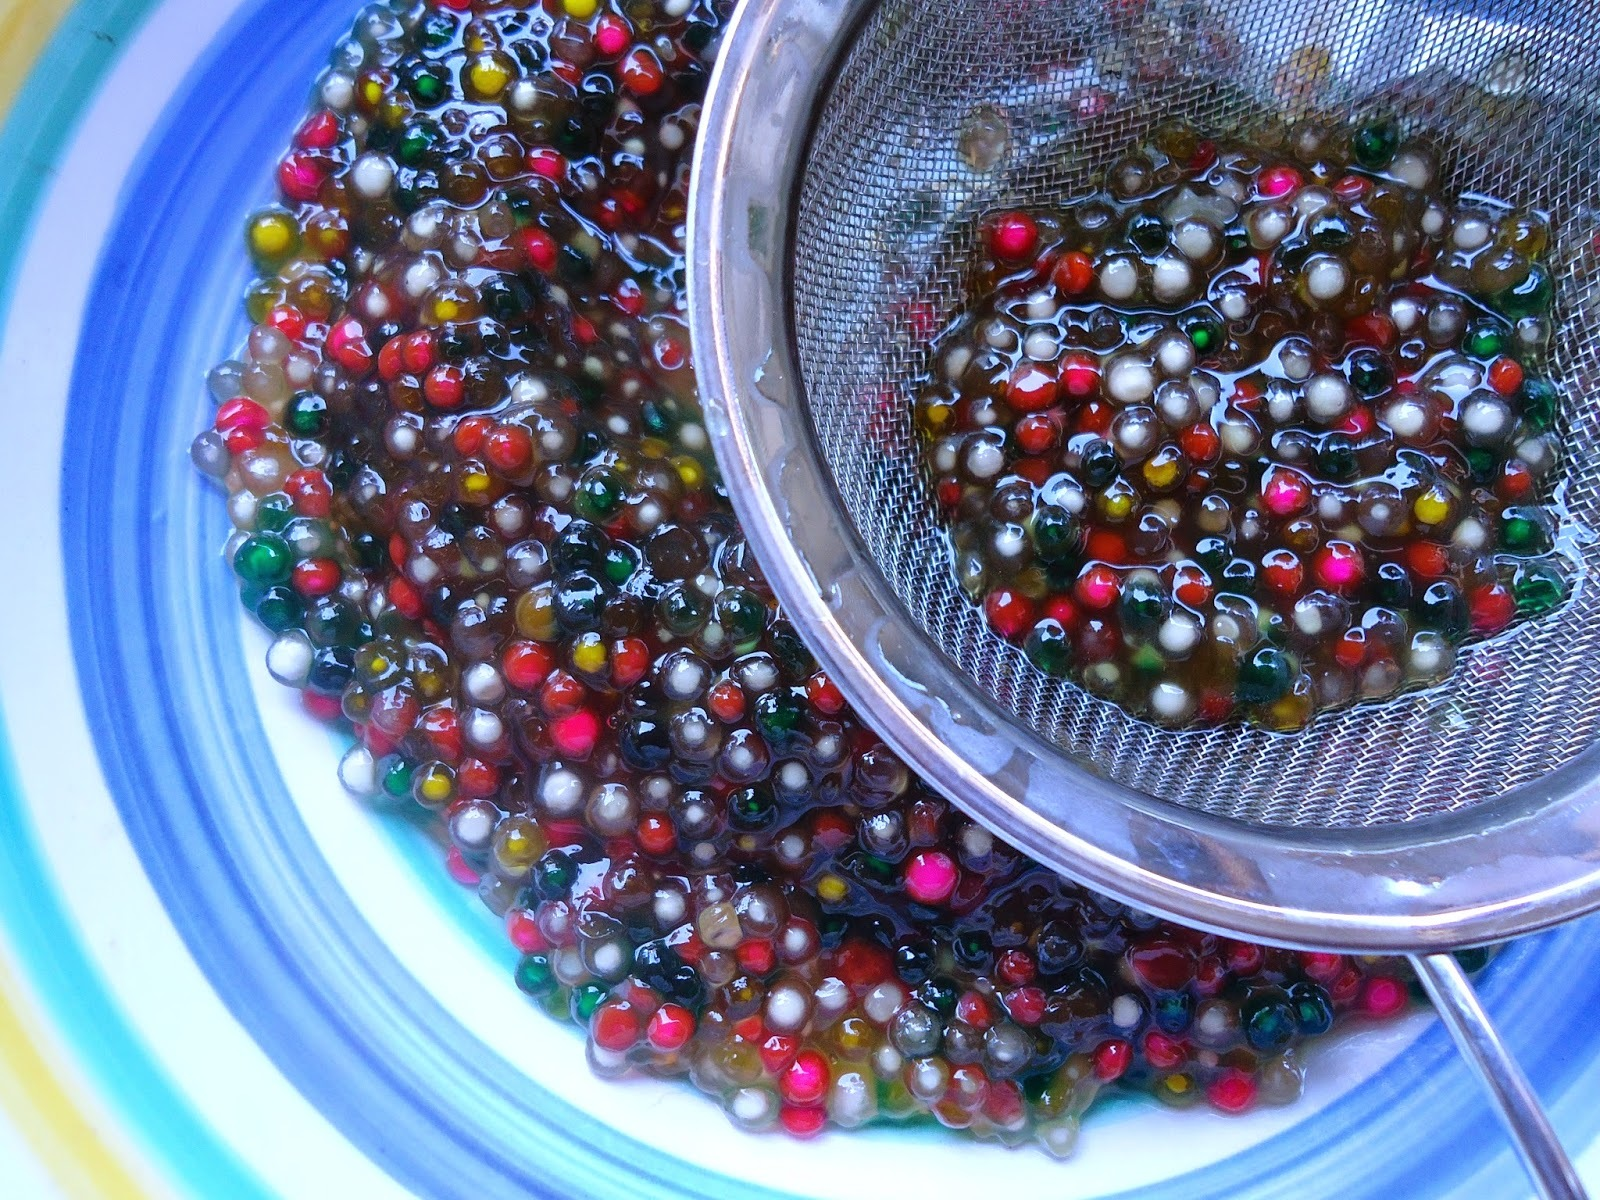 Sago pearls -- definition, composition and uses